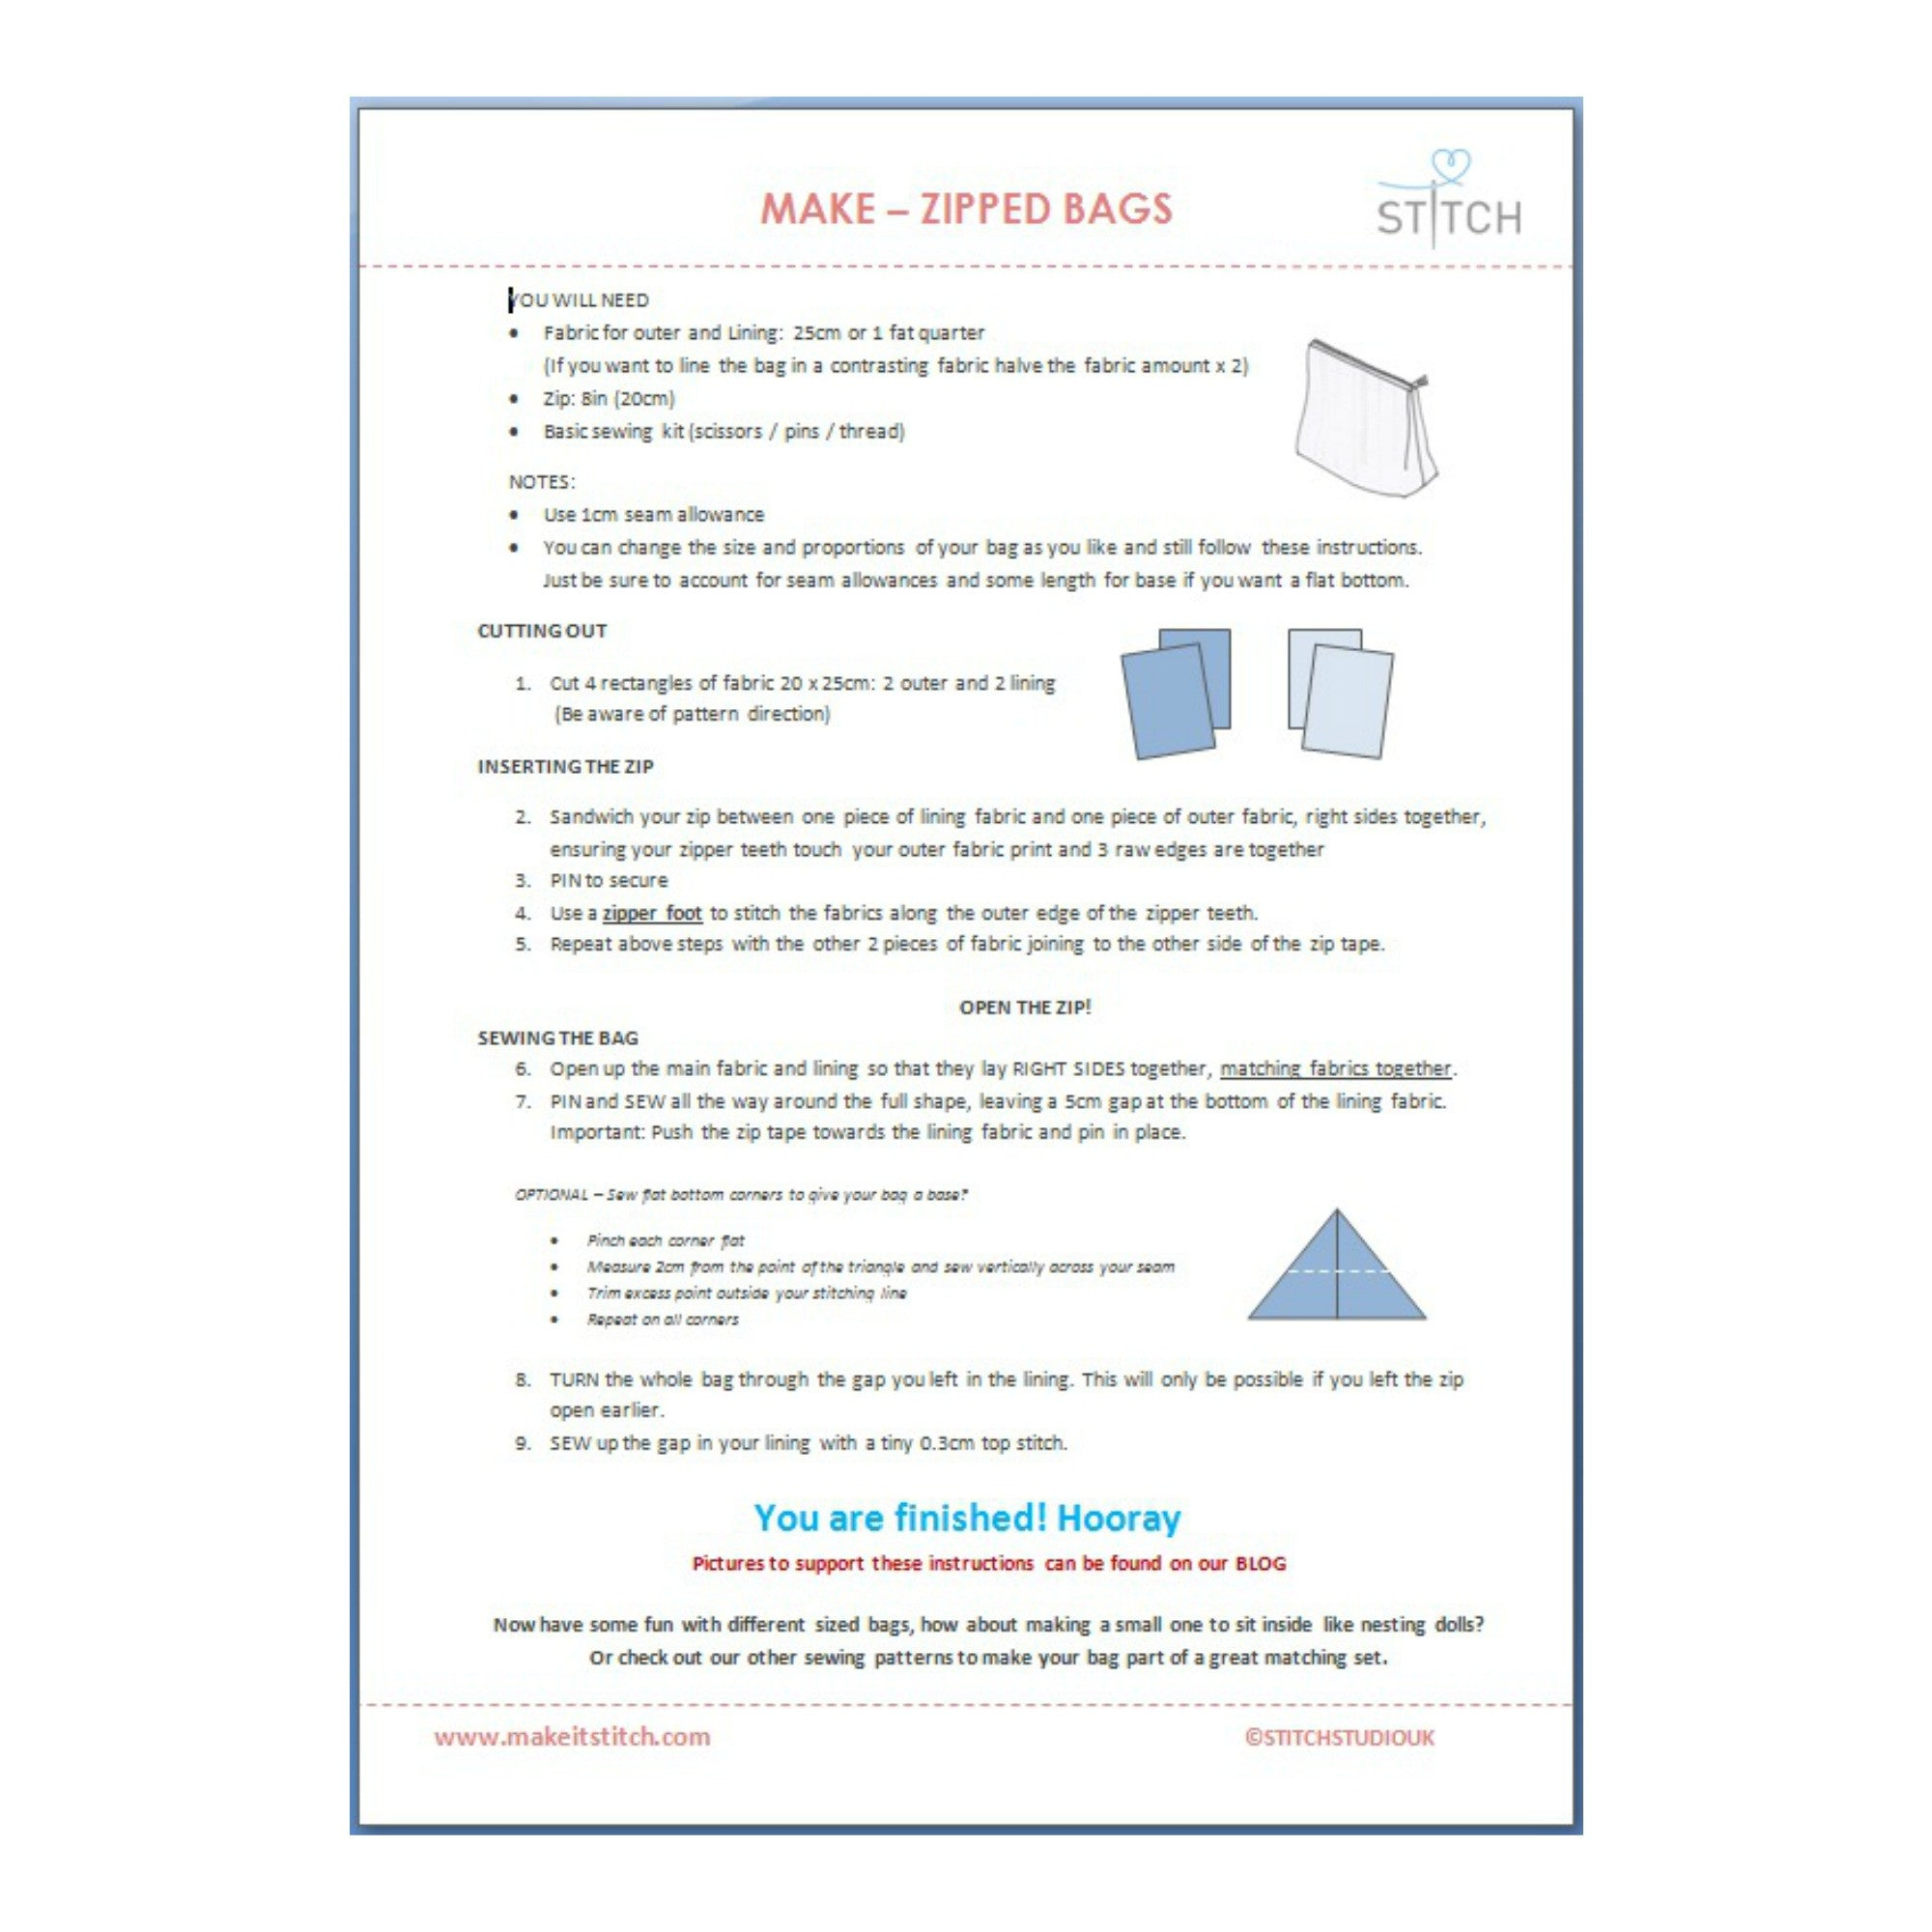 Make Zipped Bags Sewing Instructions From Stitch Studio Uk